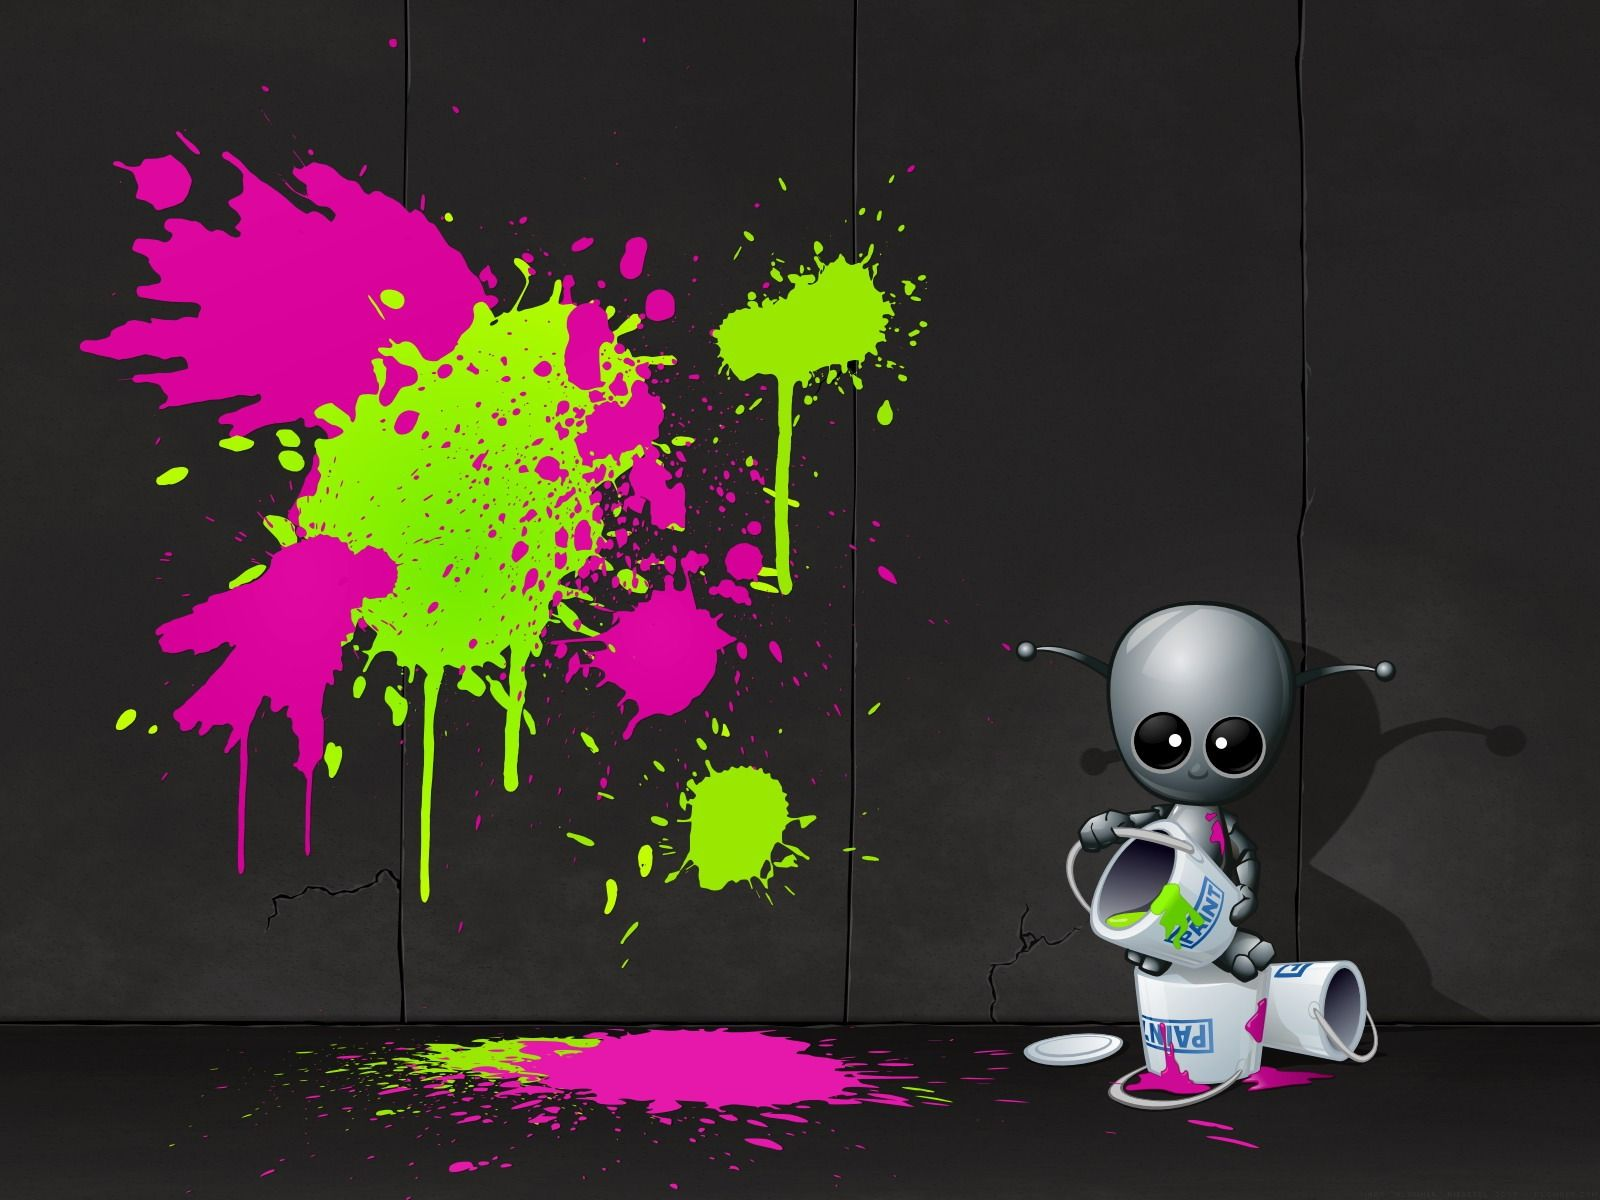 1600x1200 Robot Artist Wallpaper Abstract 3D Wallpapers in jpg format for free ...